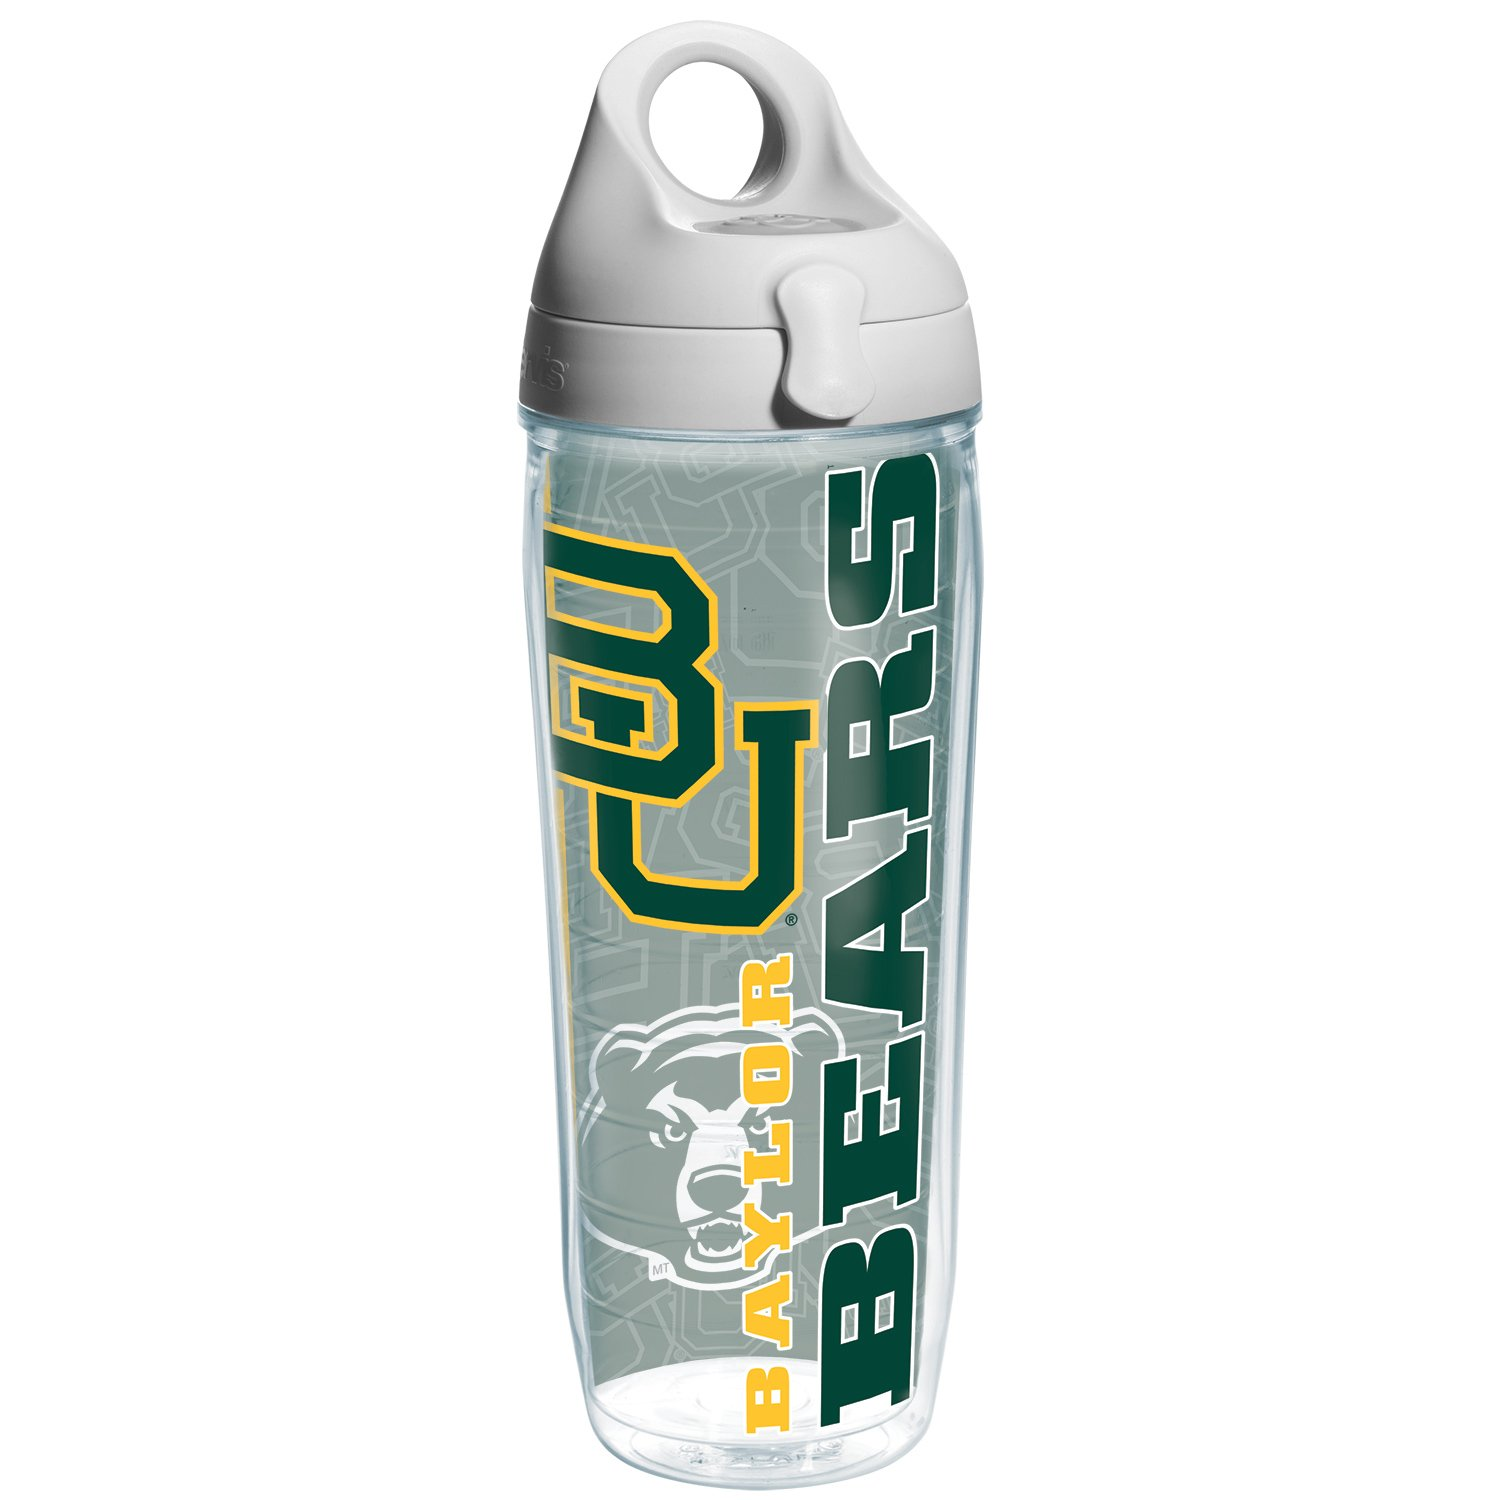 Tervis Baylor College Pride Water Bottle with Grey Lid, 24 oz, Clear